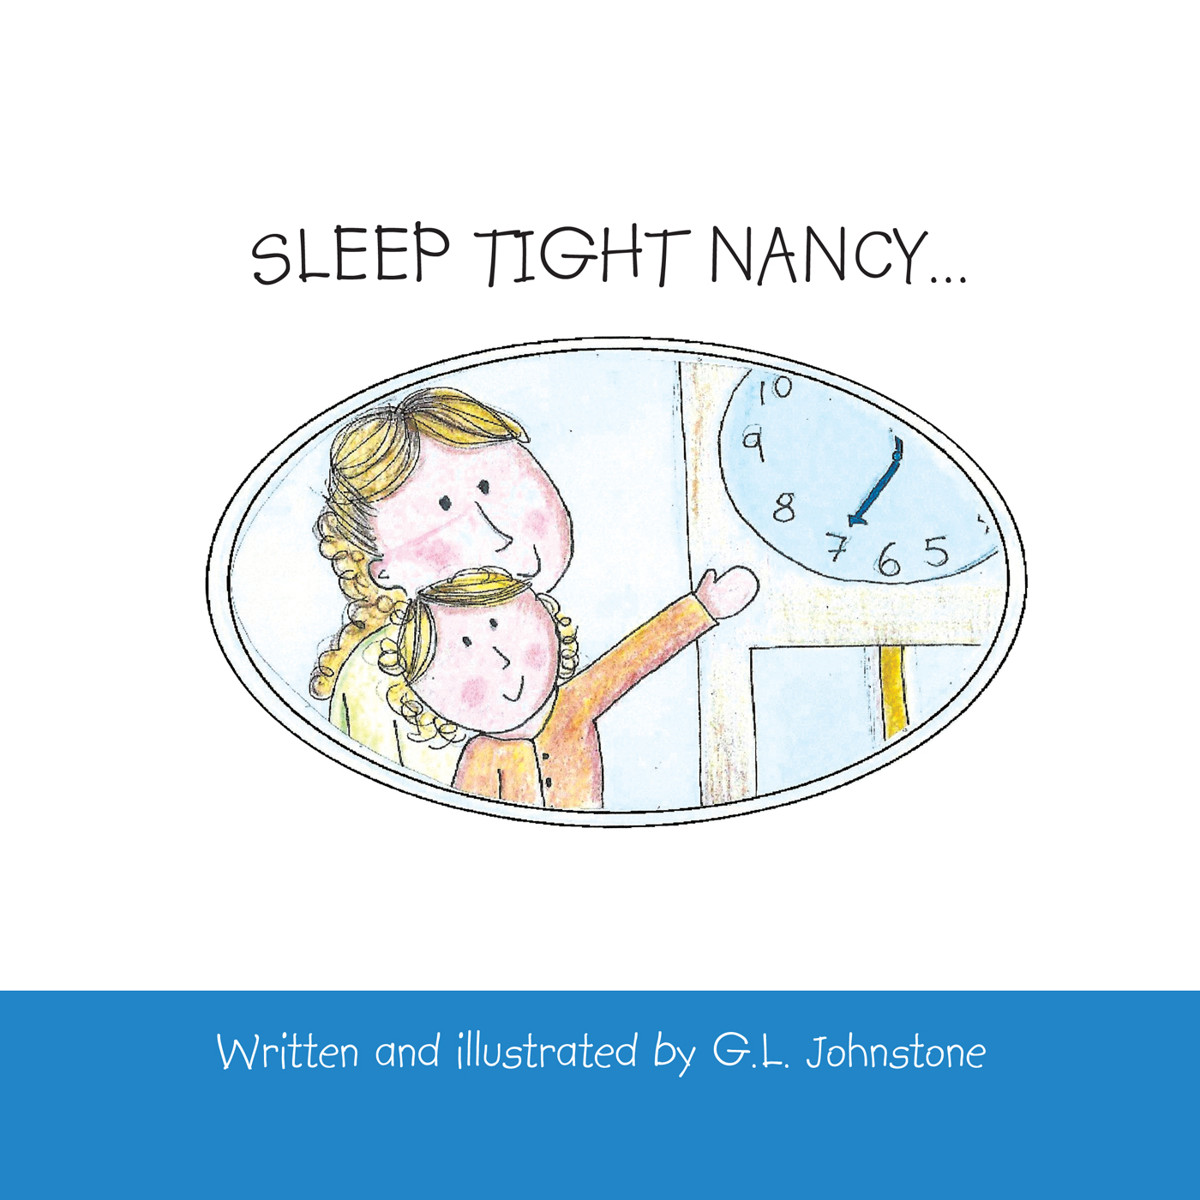 SLEEP TIGHT NANCY...